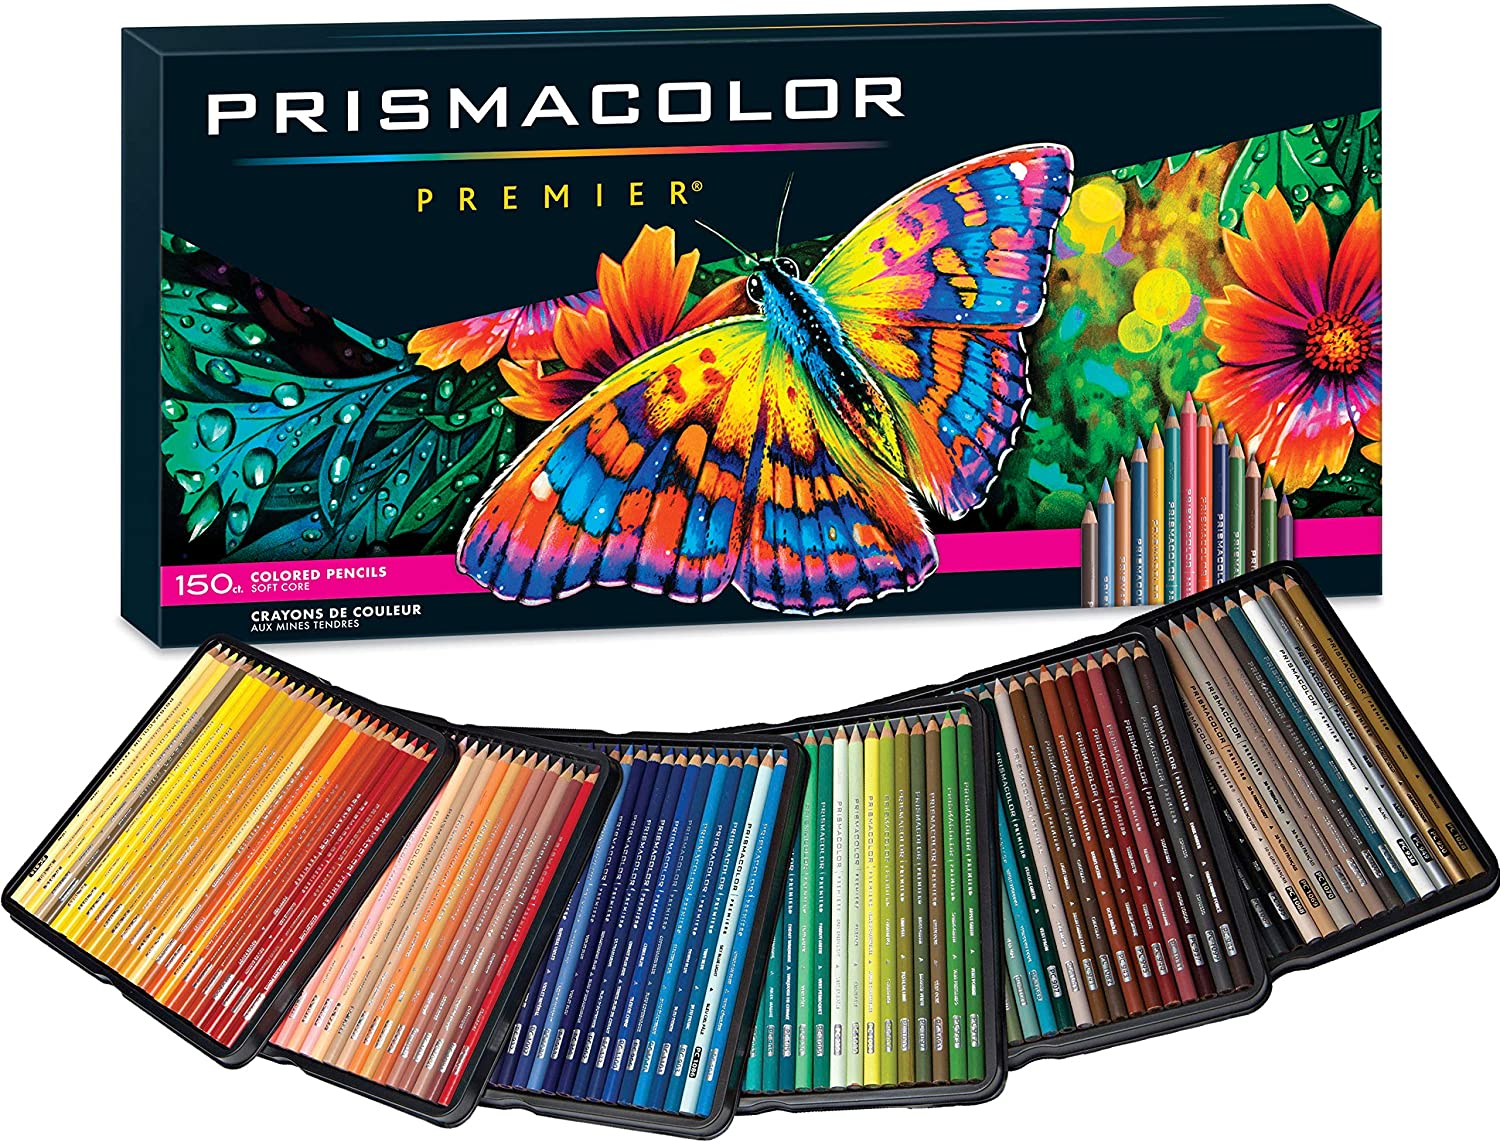 Prismacolor Premier - Set de 150 Lápices de Colores